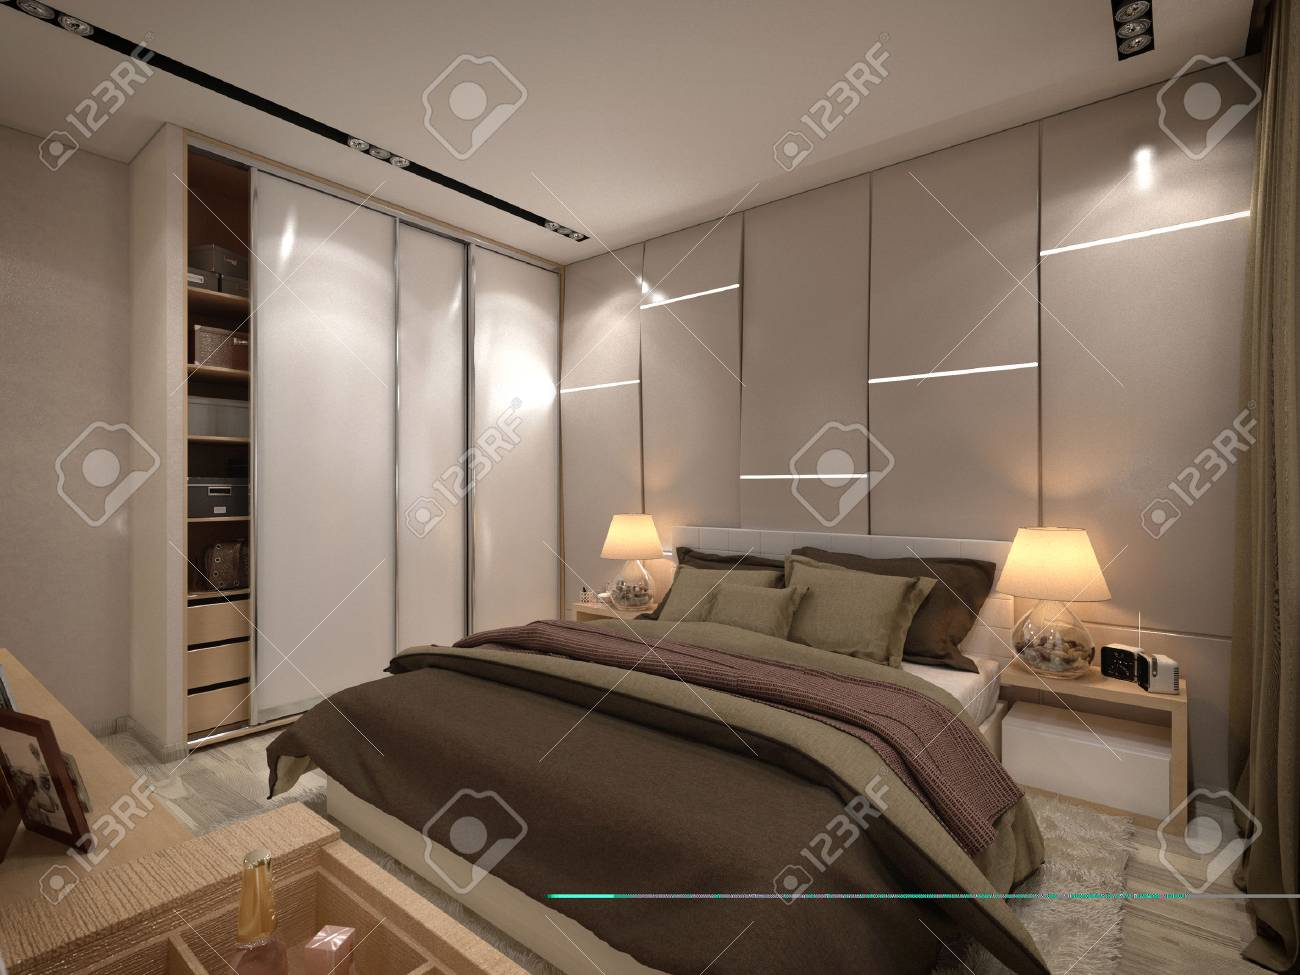 3d Render Bedroom In A Private House In Brown And Beige Colors Stock